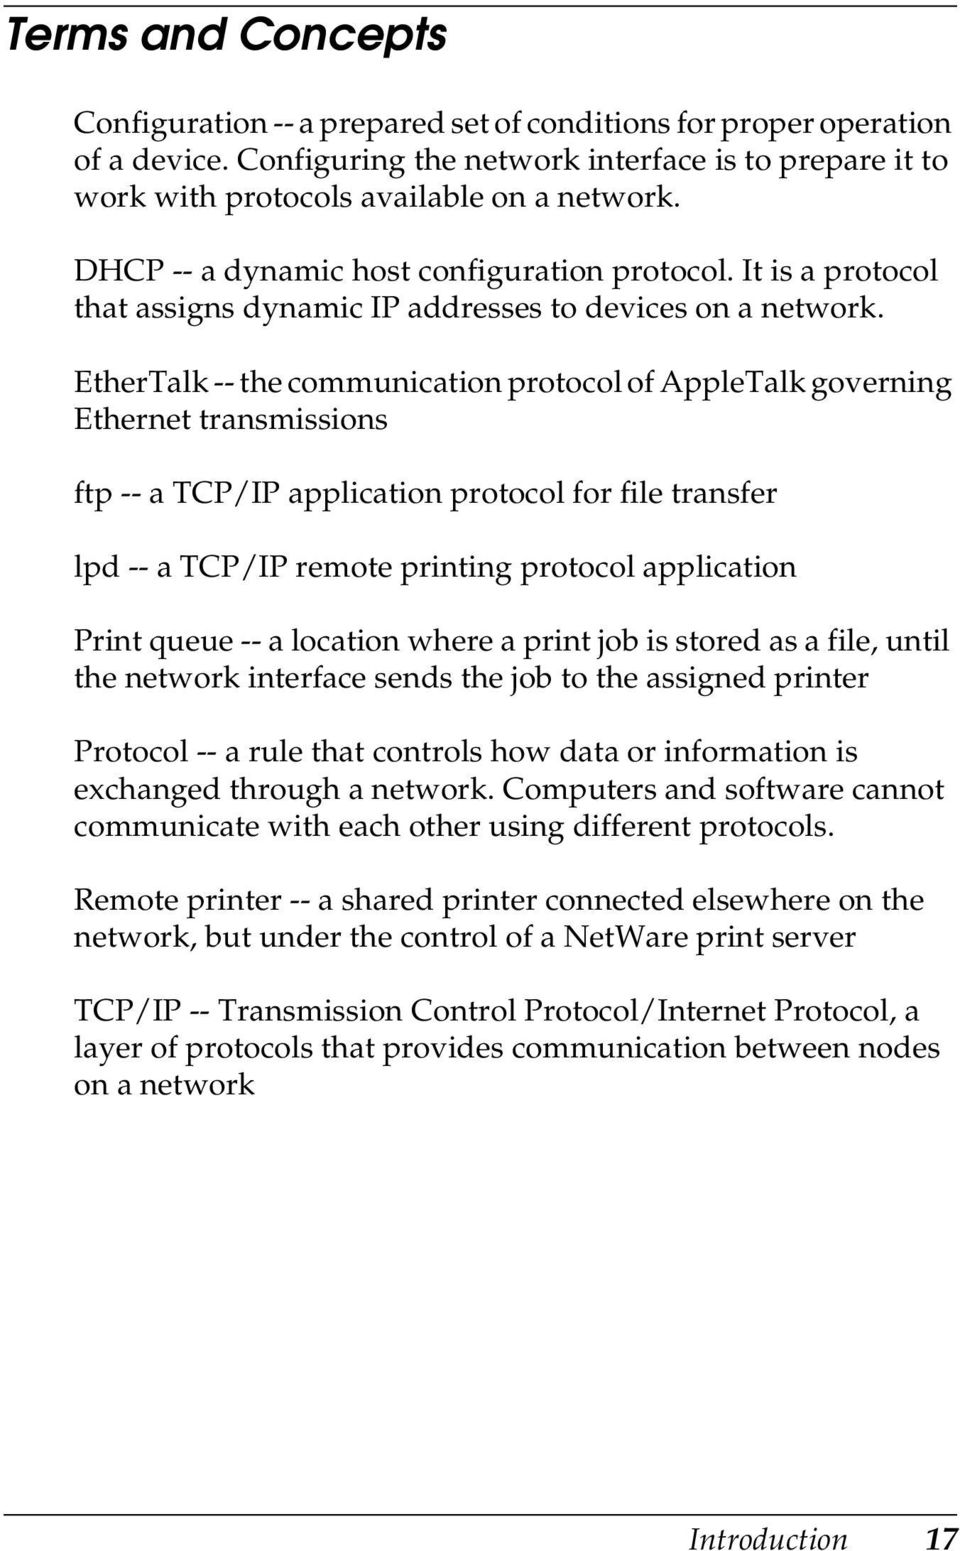 EtherTalk -- the communication protocol of AppleTalk governing Ethernet transmissions ftp -- a TCP/IP application protocol for file transfer lpd -- a TCP/IP remote printing protocol application Print